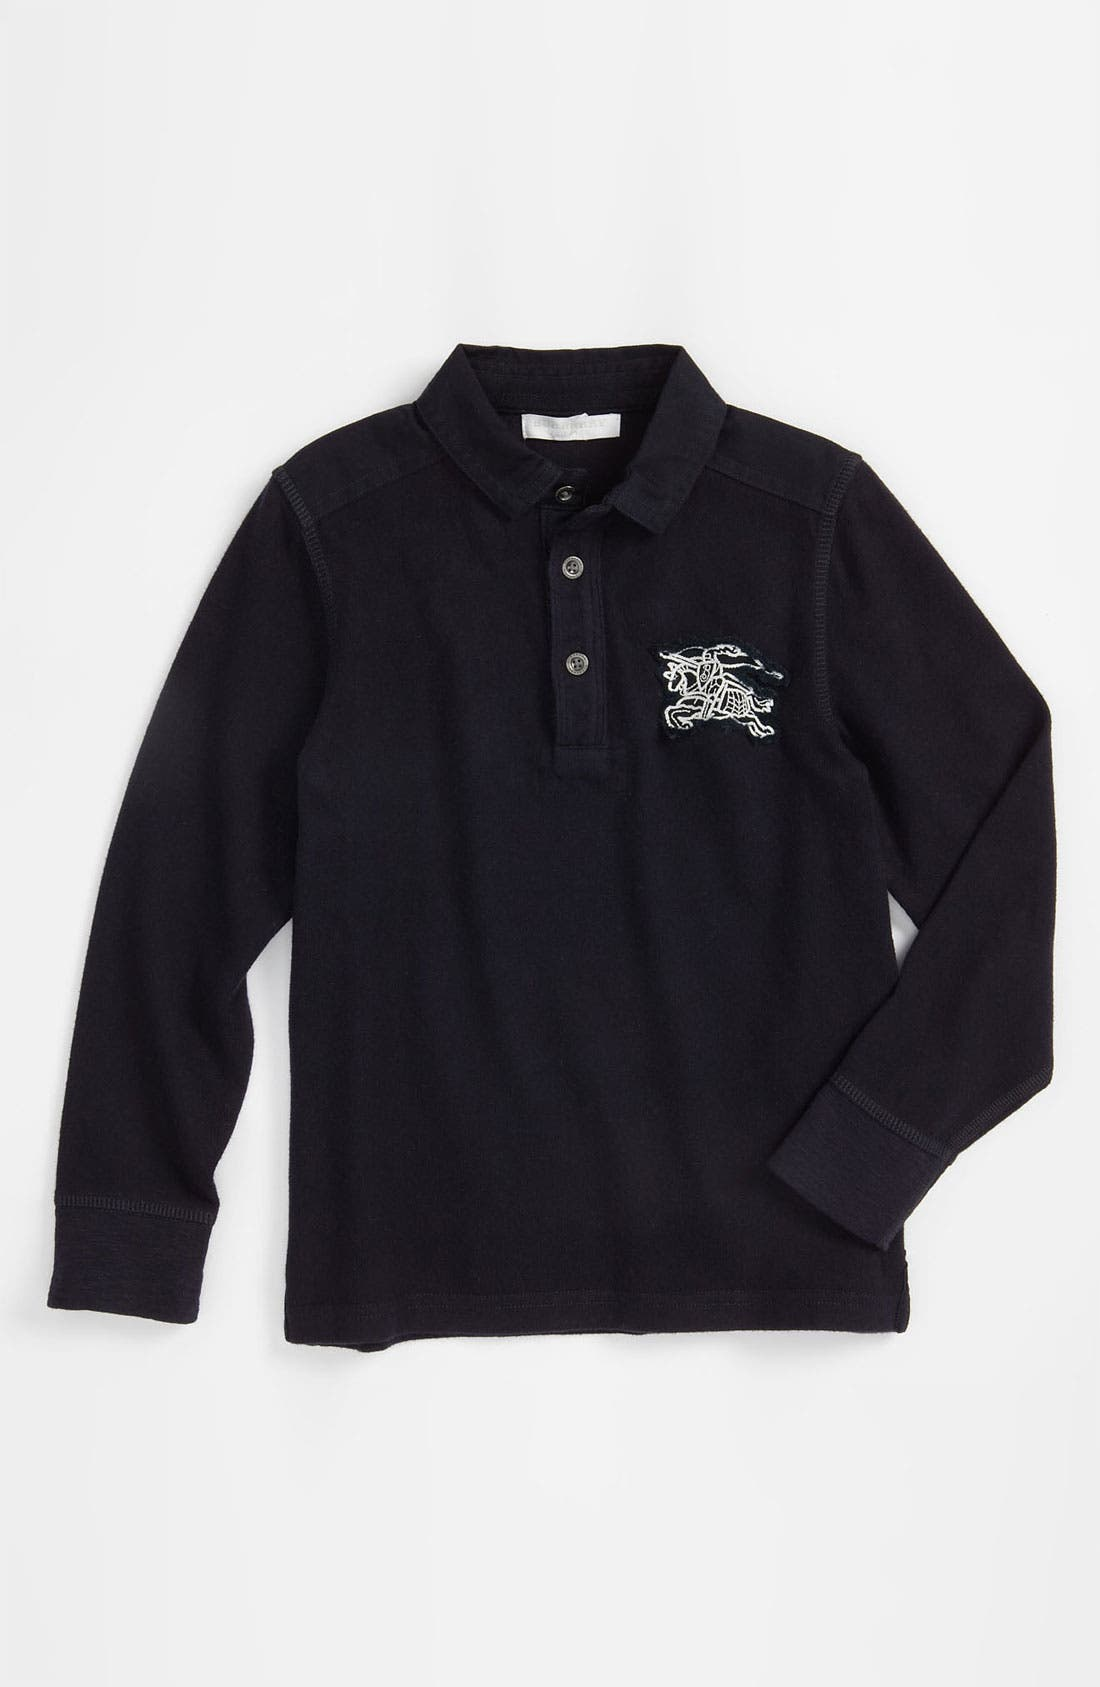 Alternate Image 1 Selected - Burberry Rugby Shirt (Little Boys)